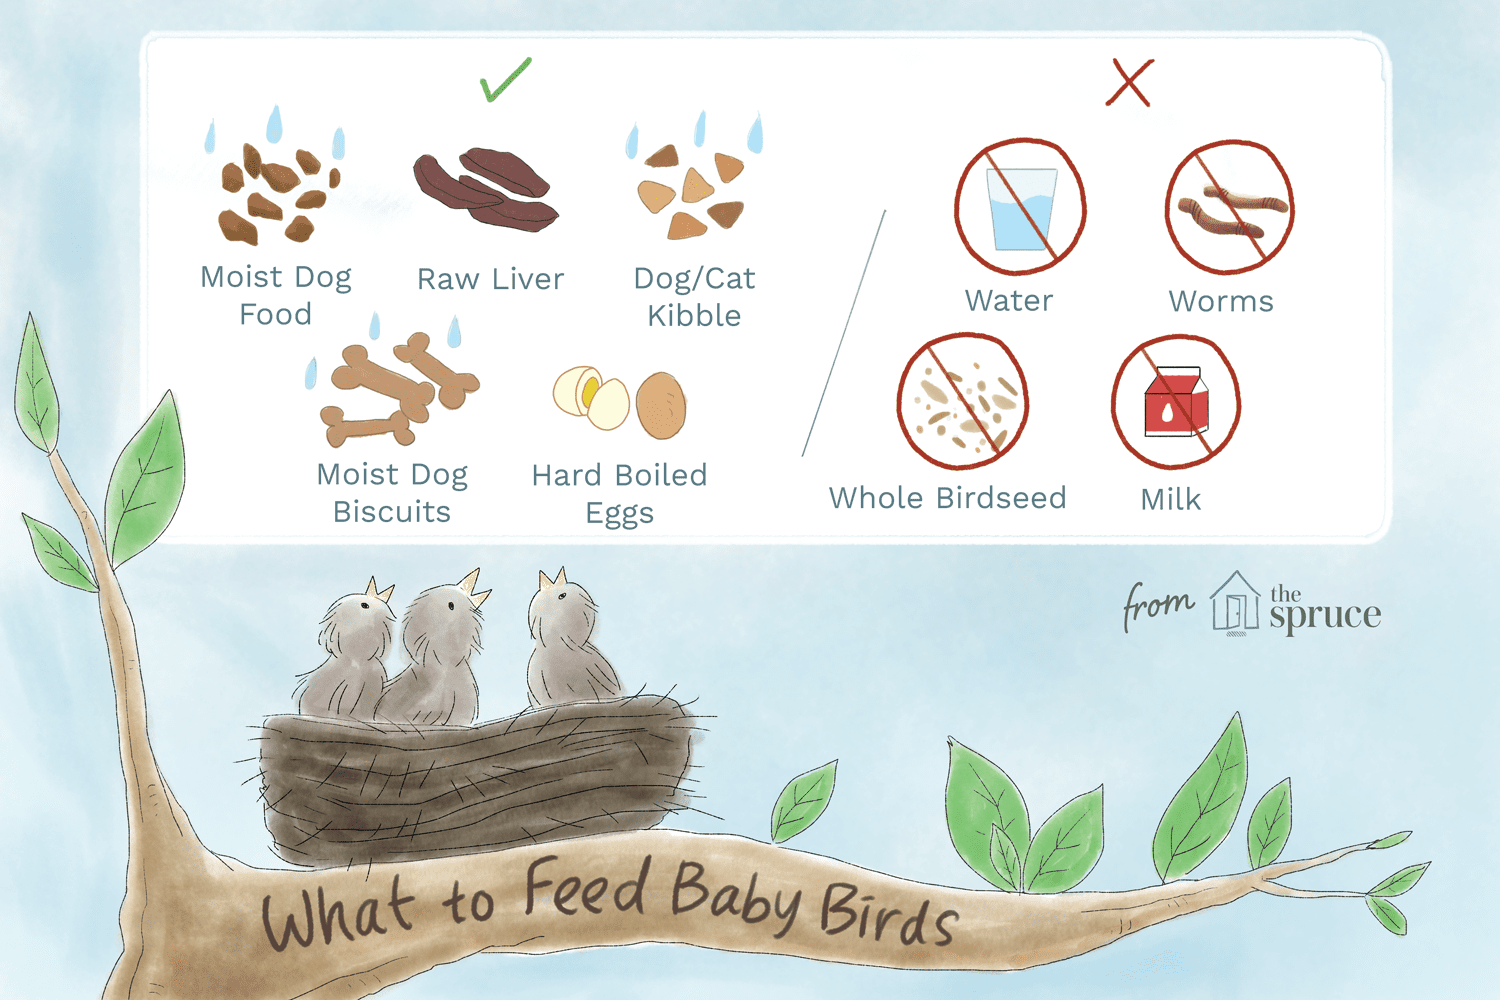 e4db6947a27904bebd719e837d6894f0 - How To Get A Wild Baby Bird To Eat